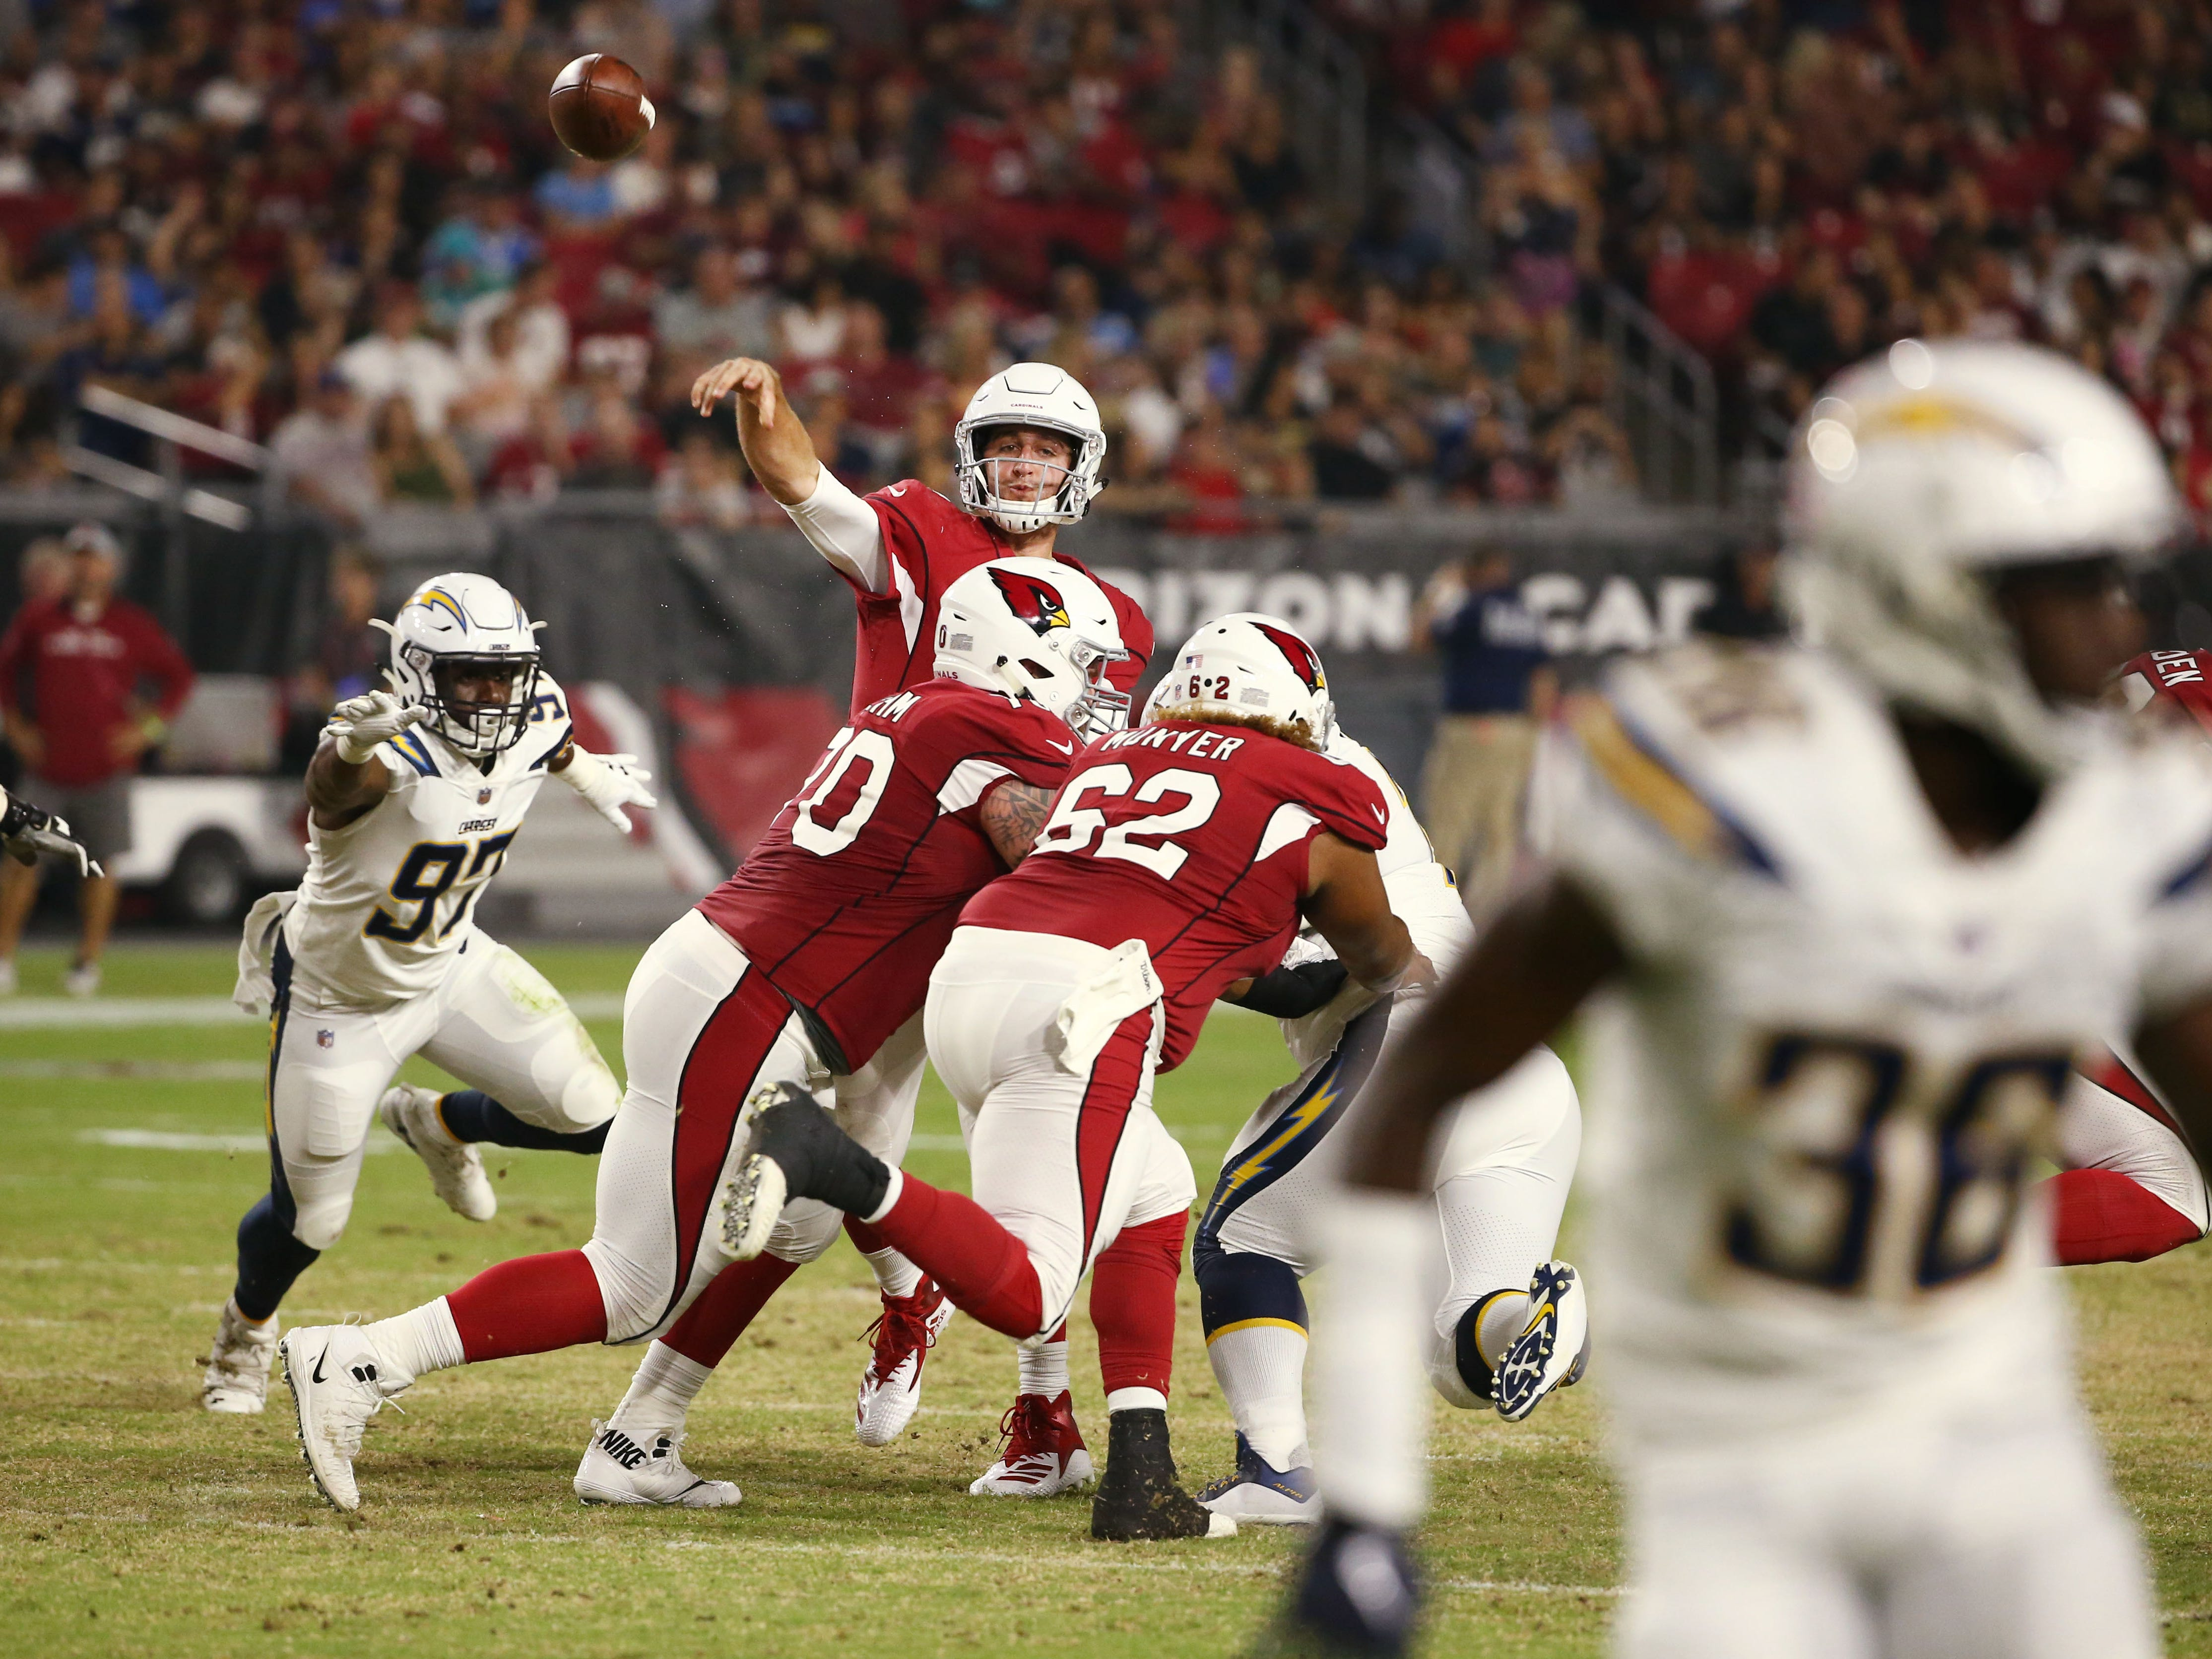 Arizona Cardinals quarterback Josh Rosen throws an incomplete pass against the L.A. Chargers in the first half during a preseason NFL football game on Aug. 11, 2018 at University of Phoenix Stadium in Glendale, Ariz.